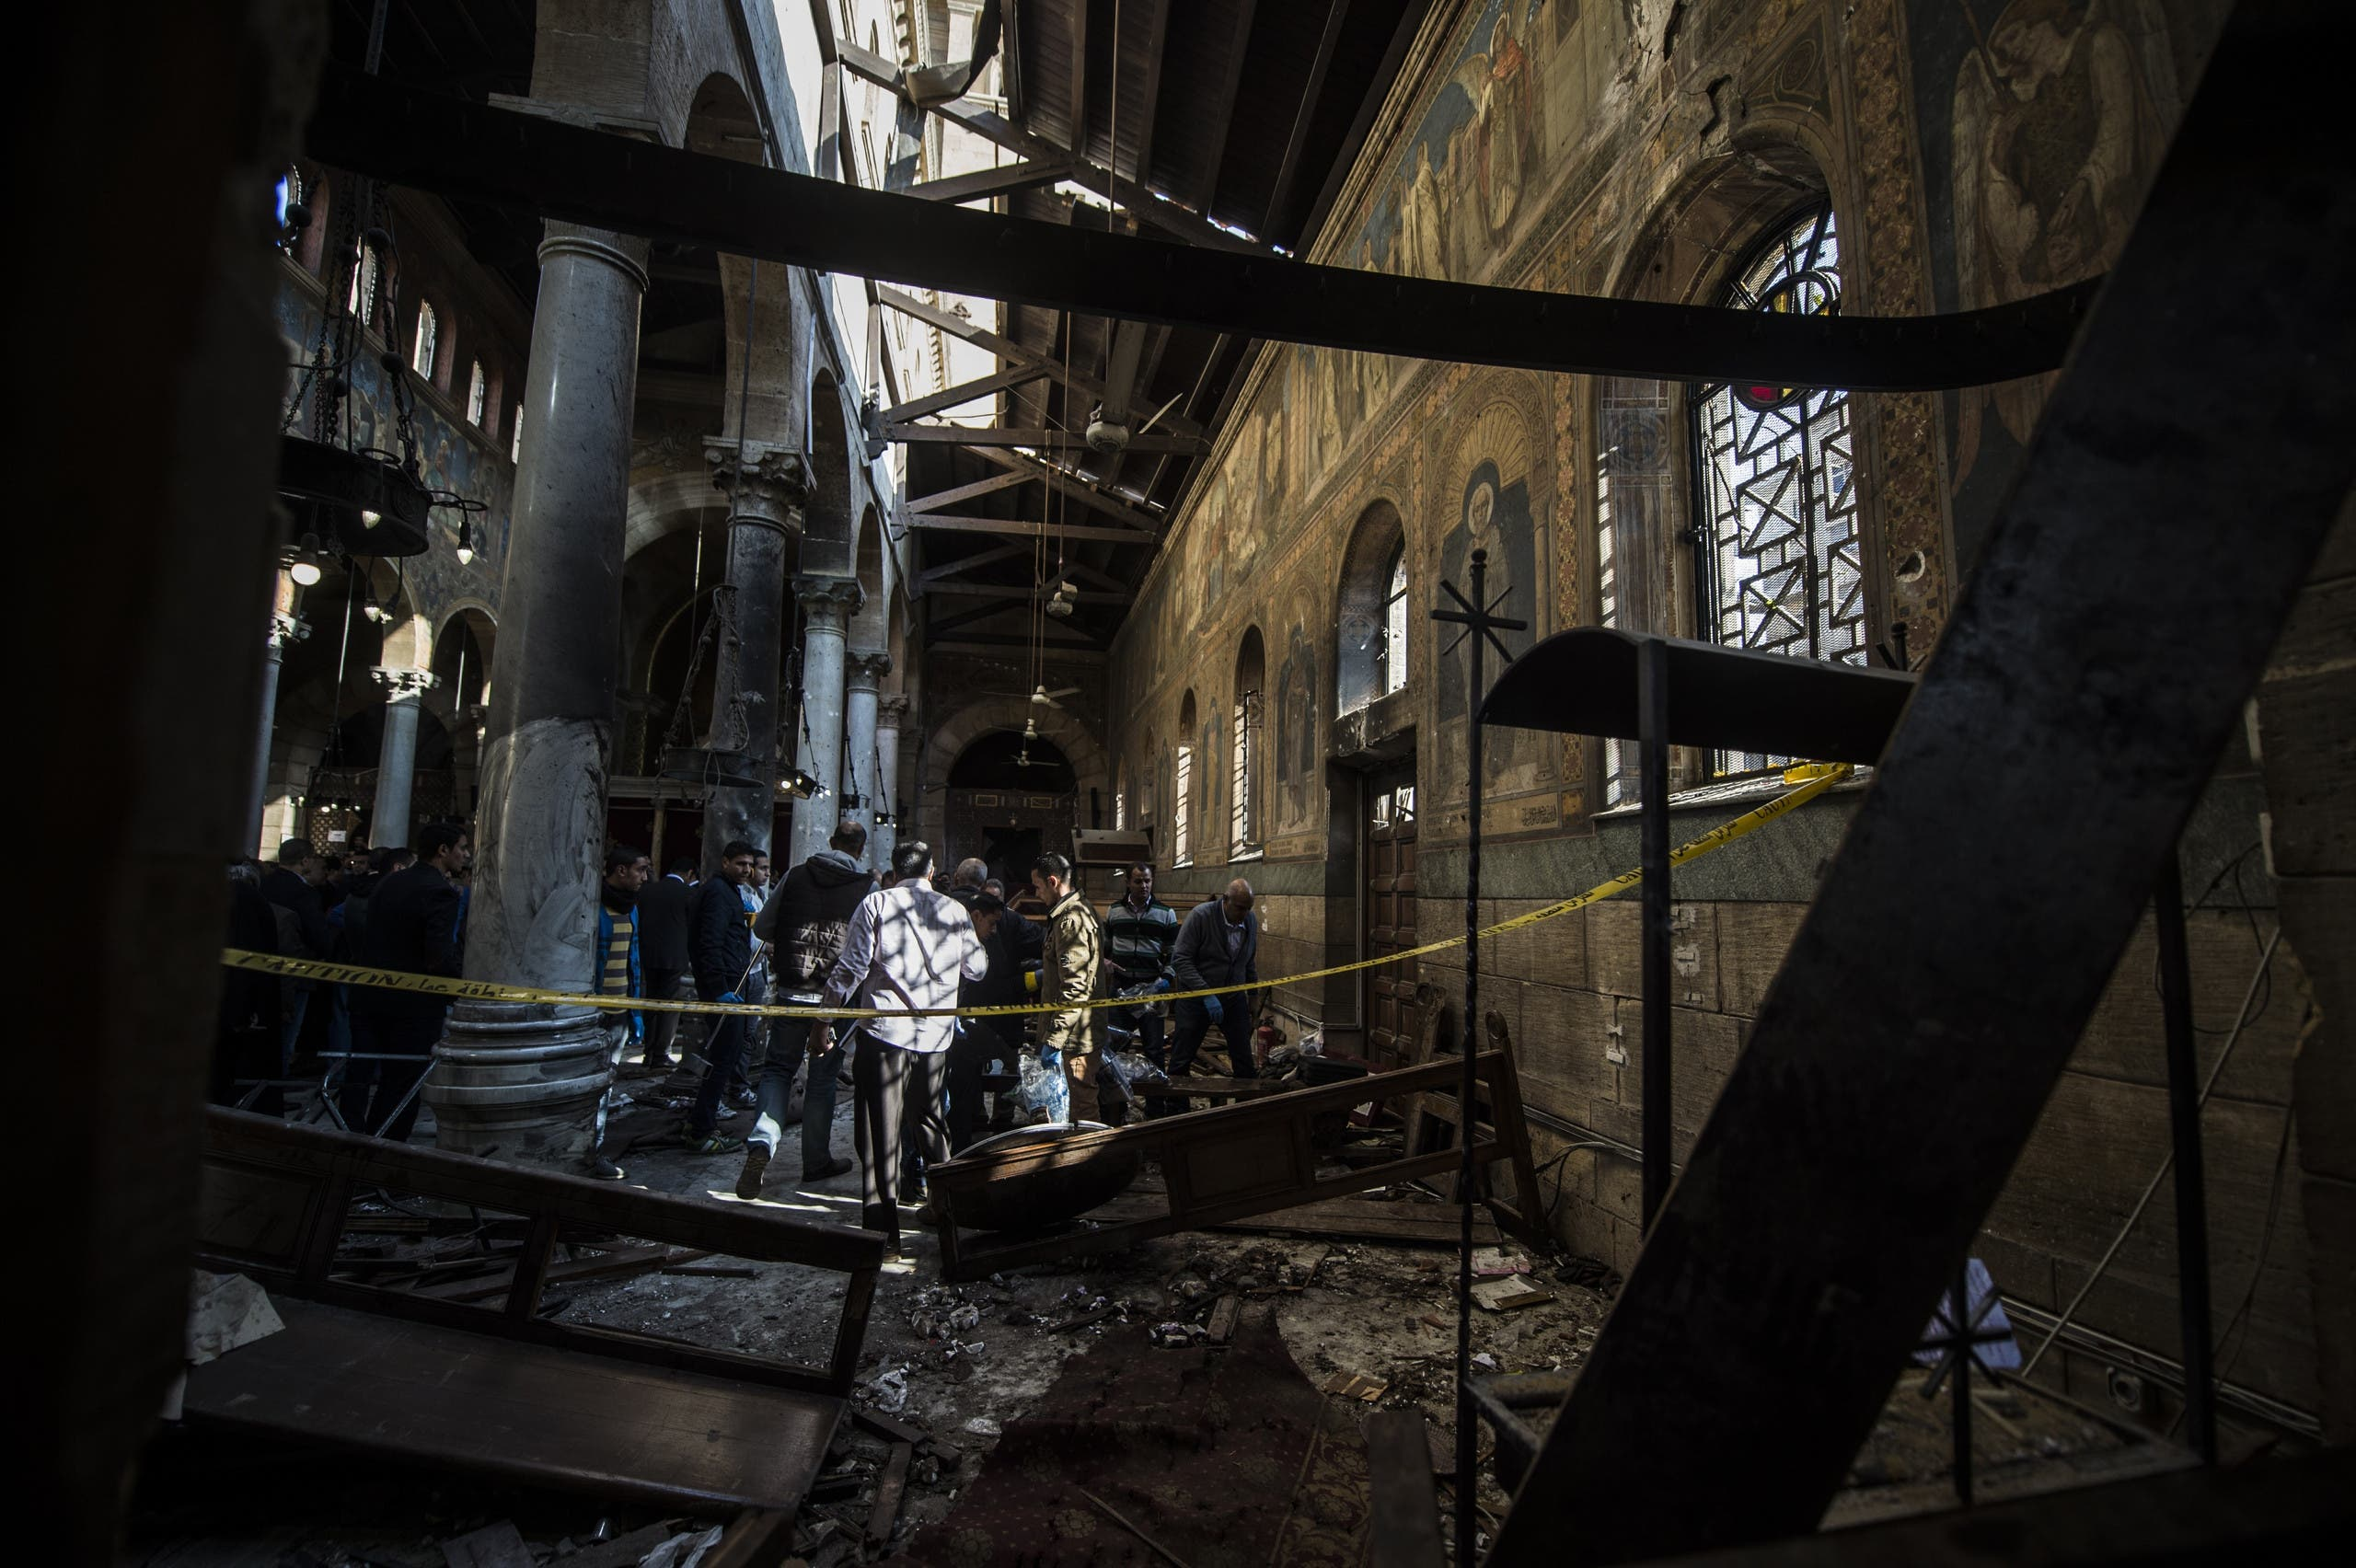 Egyptian security forces inspect the scene of a bomb explosion inside the Saint Peter and Saint Paul Coptic Orthodox Church on December 11, 2016, in Cairo's Abbasiya neighbourhood.